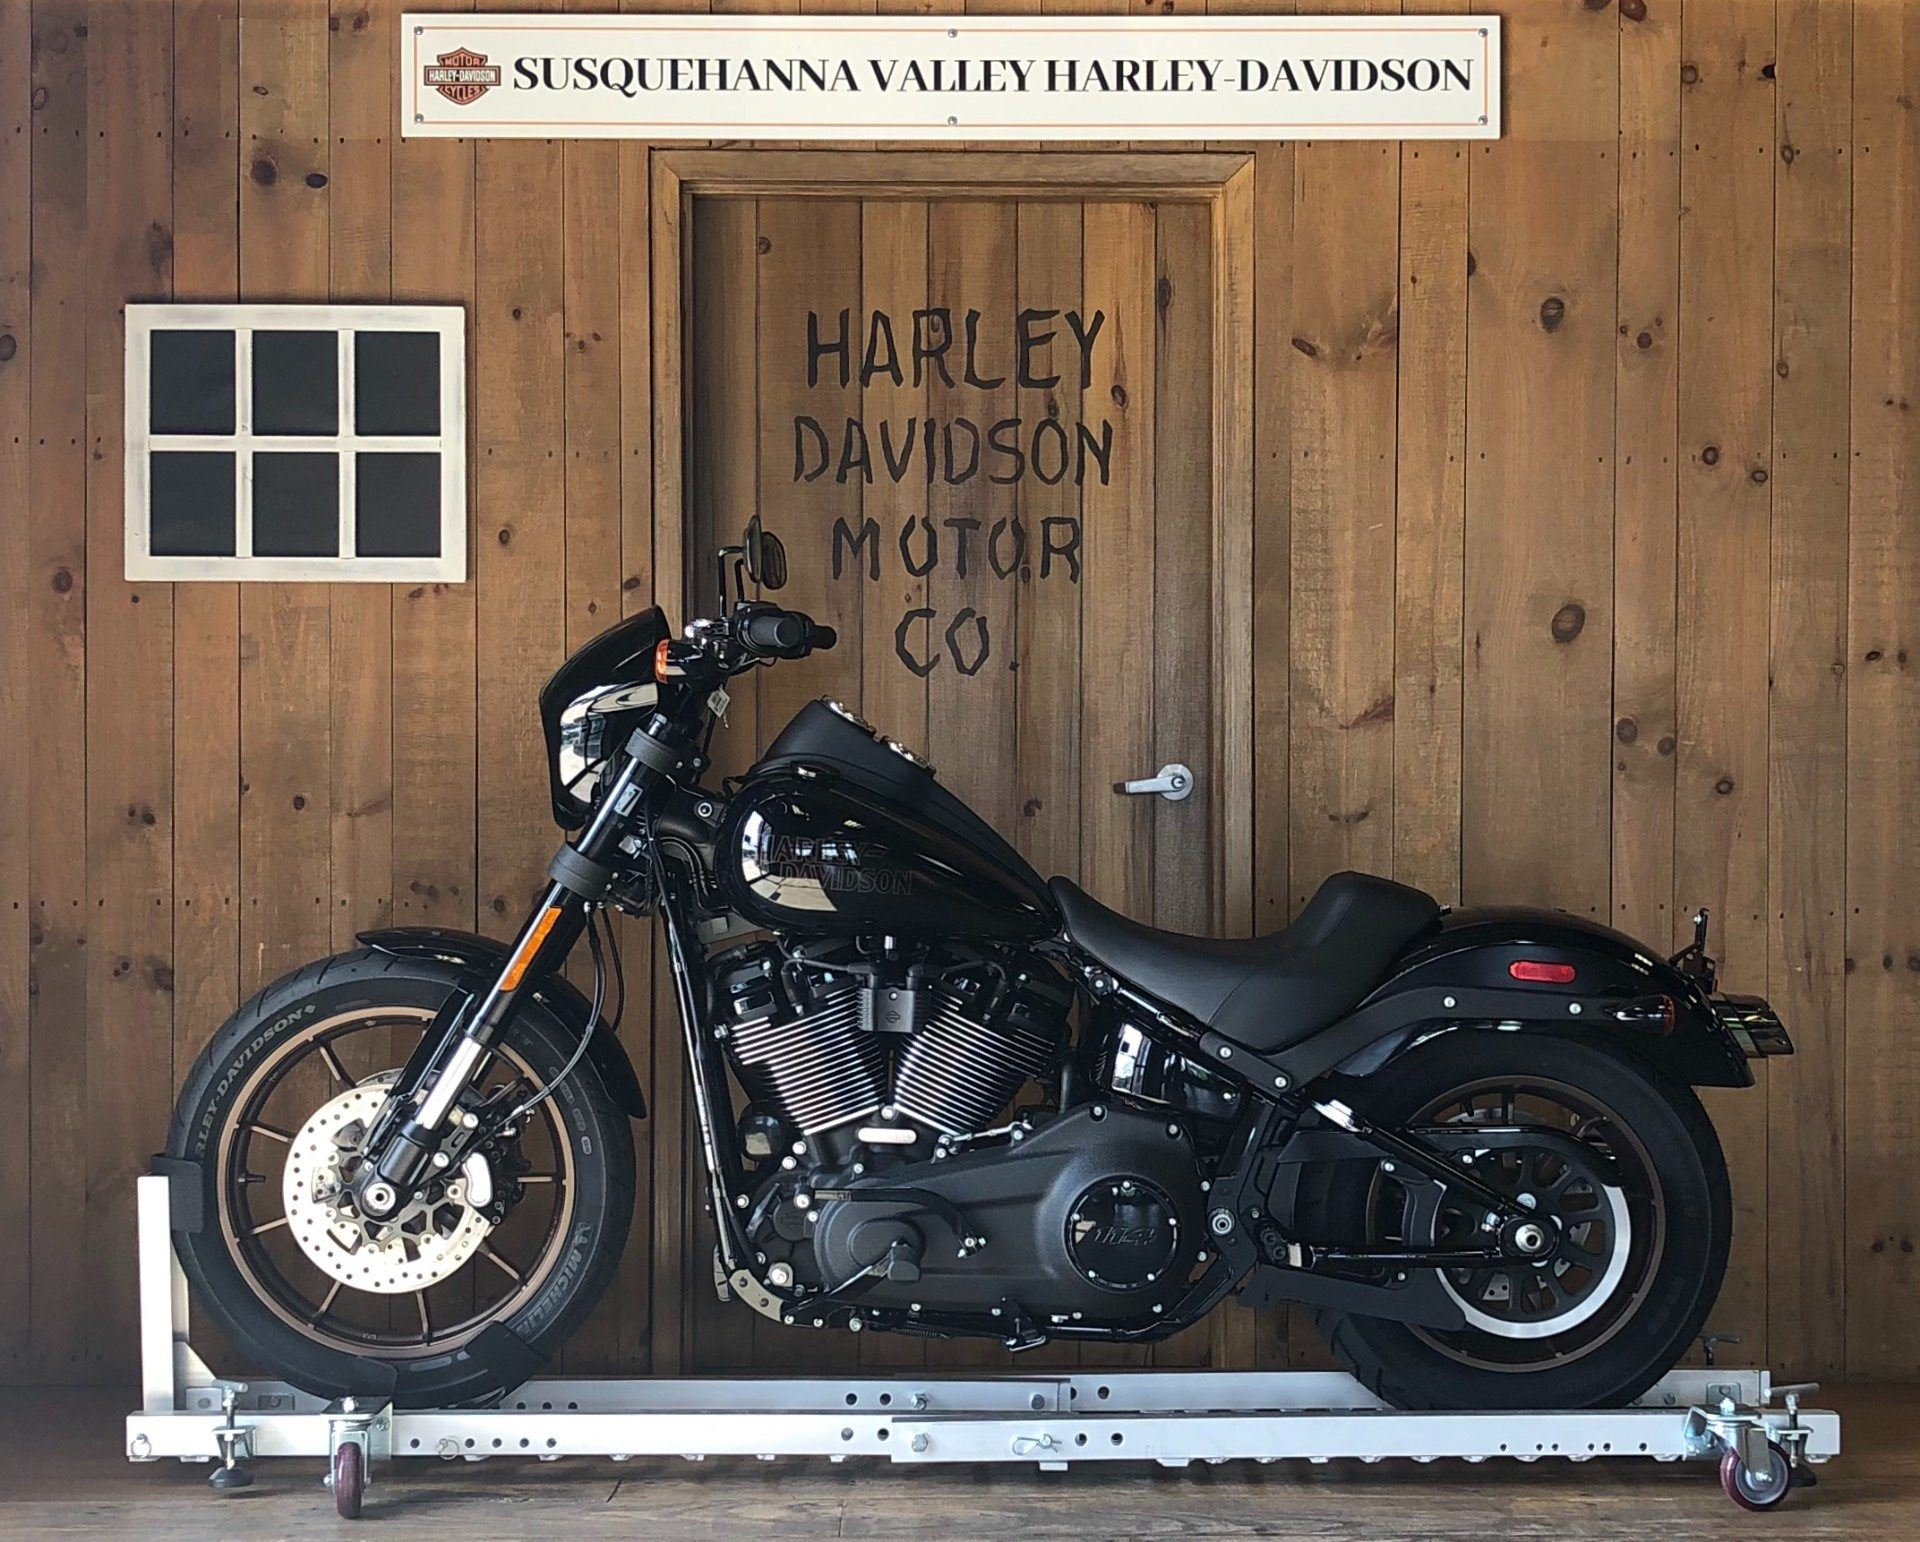 2020 Harley-Davidson Low Rider S in Harrisburg, Pennsylvania - Photo 2